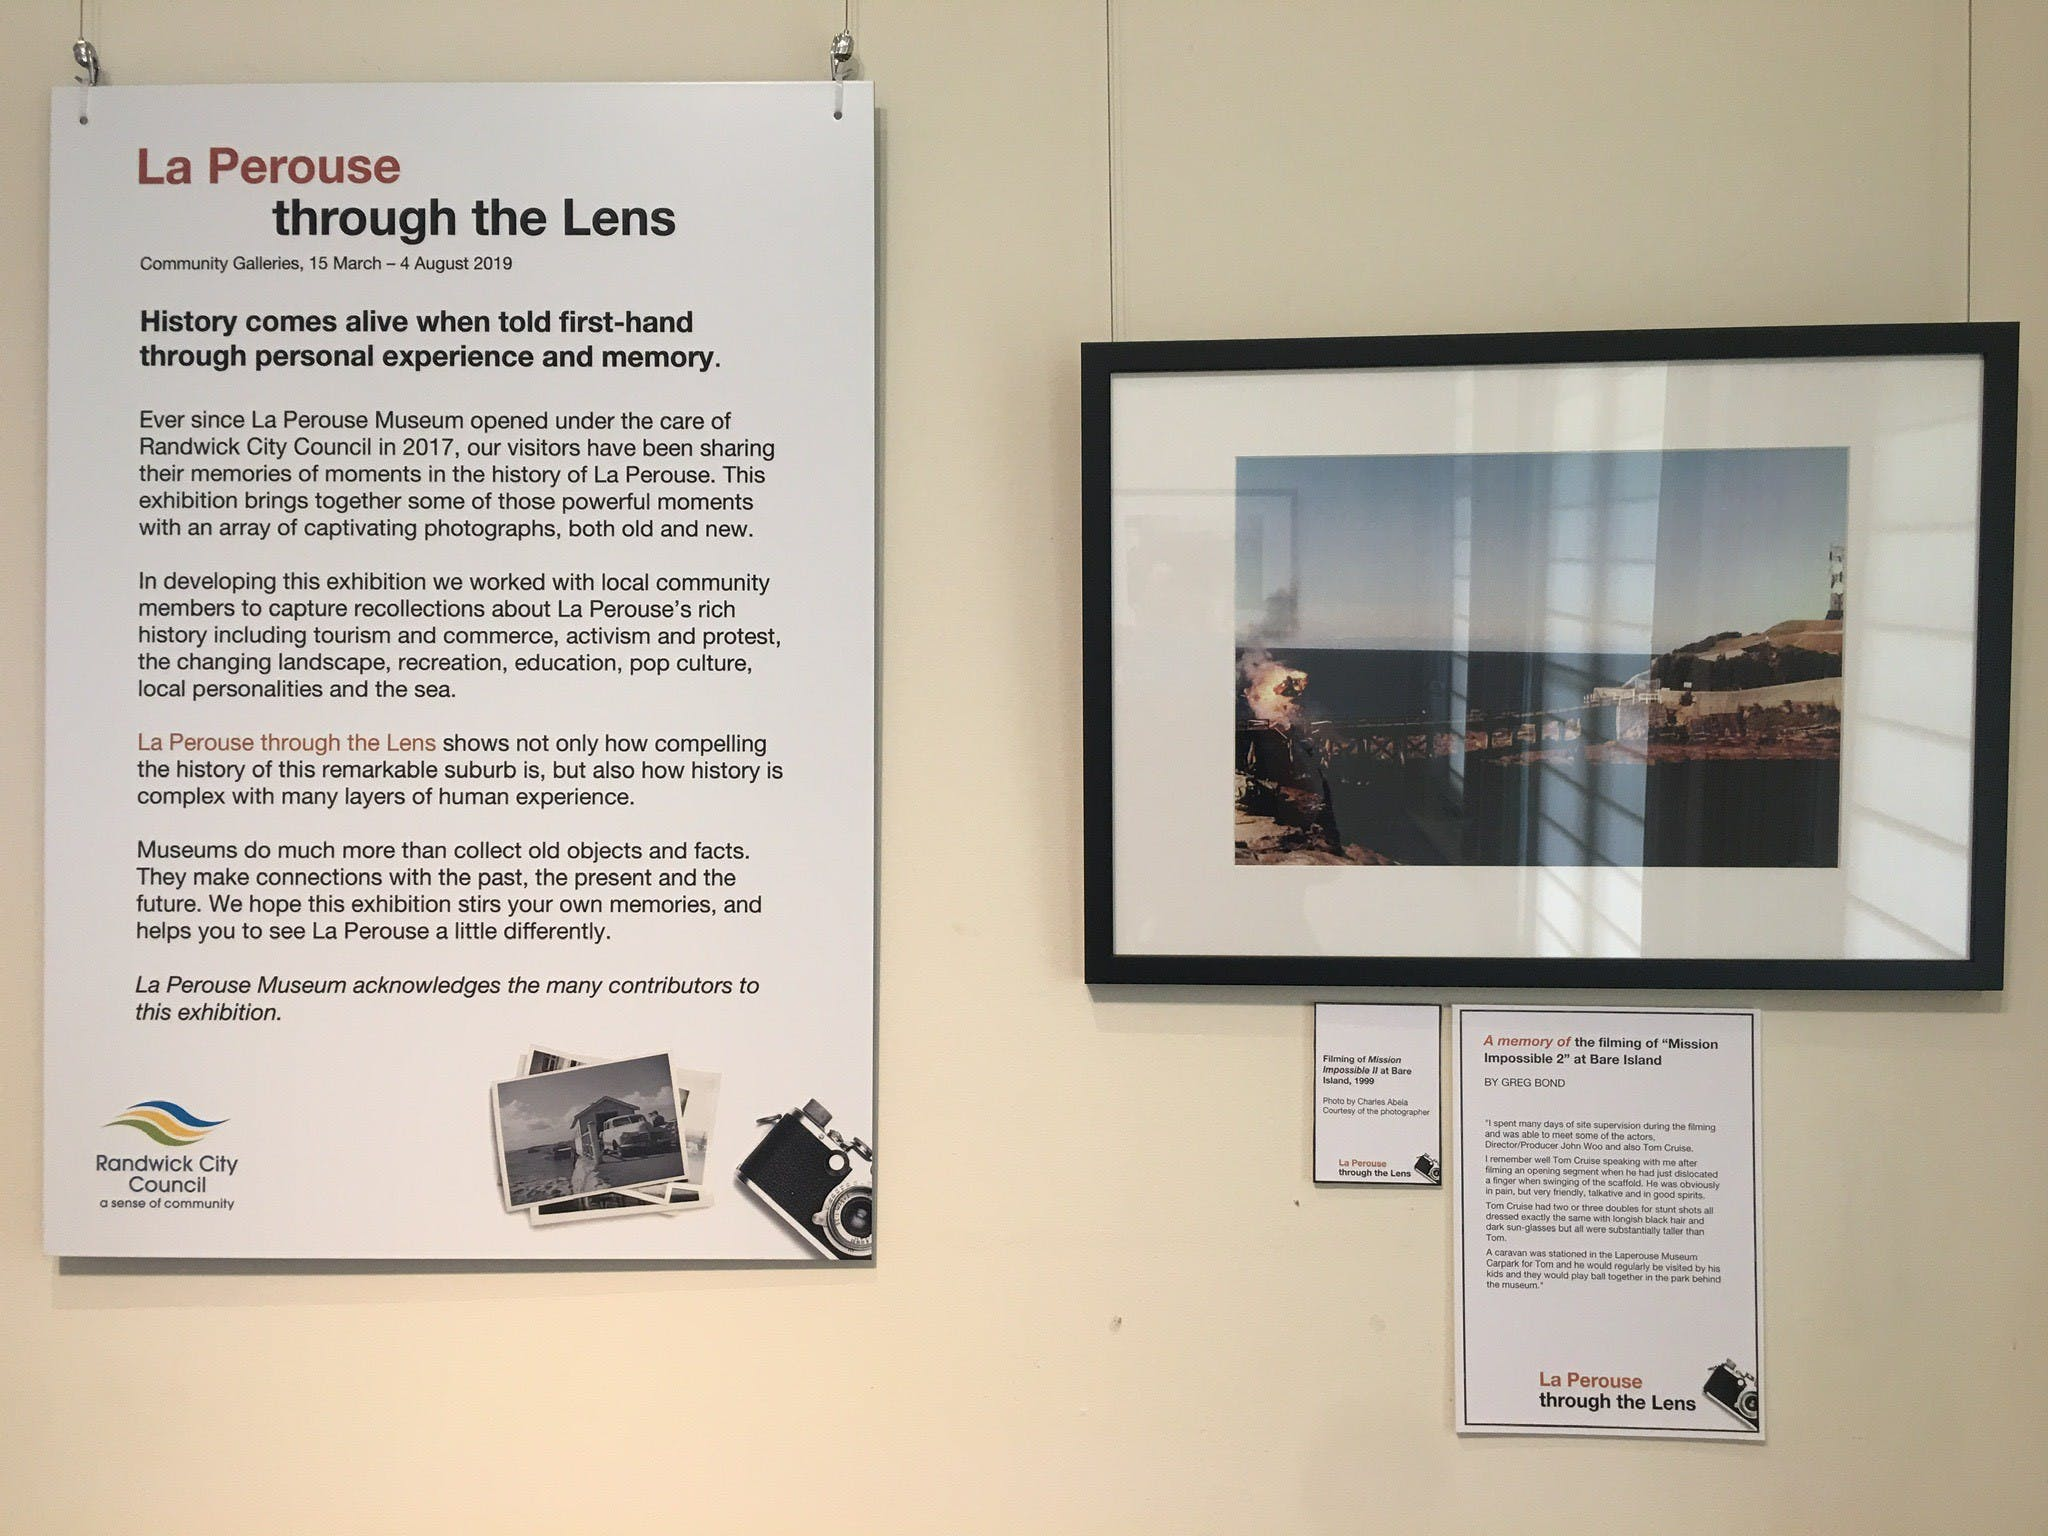 Display at the La Perouse Museum